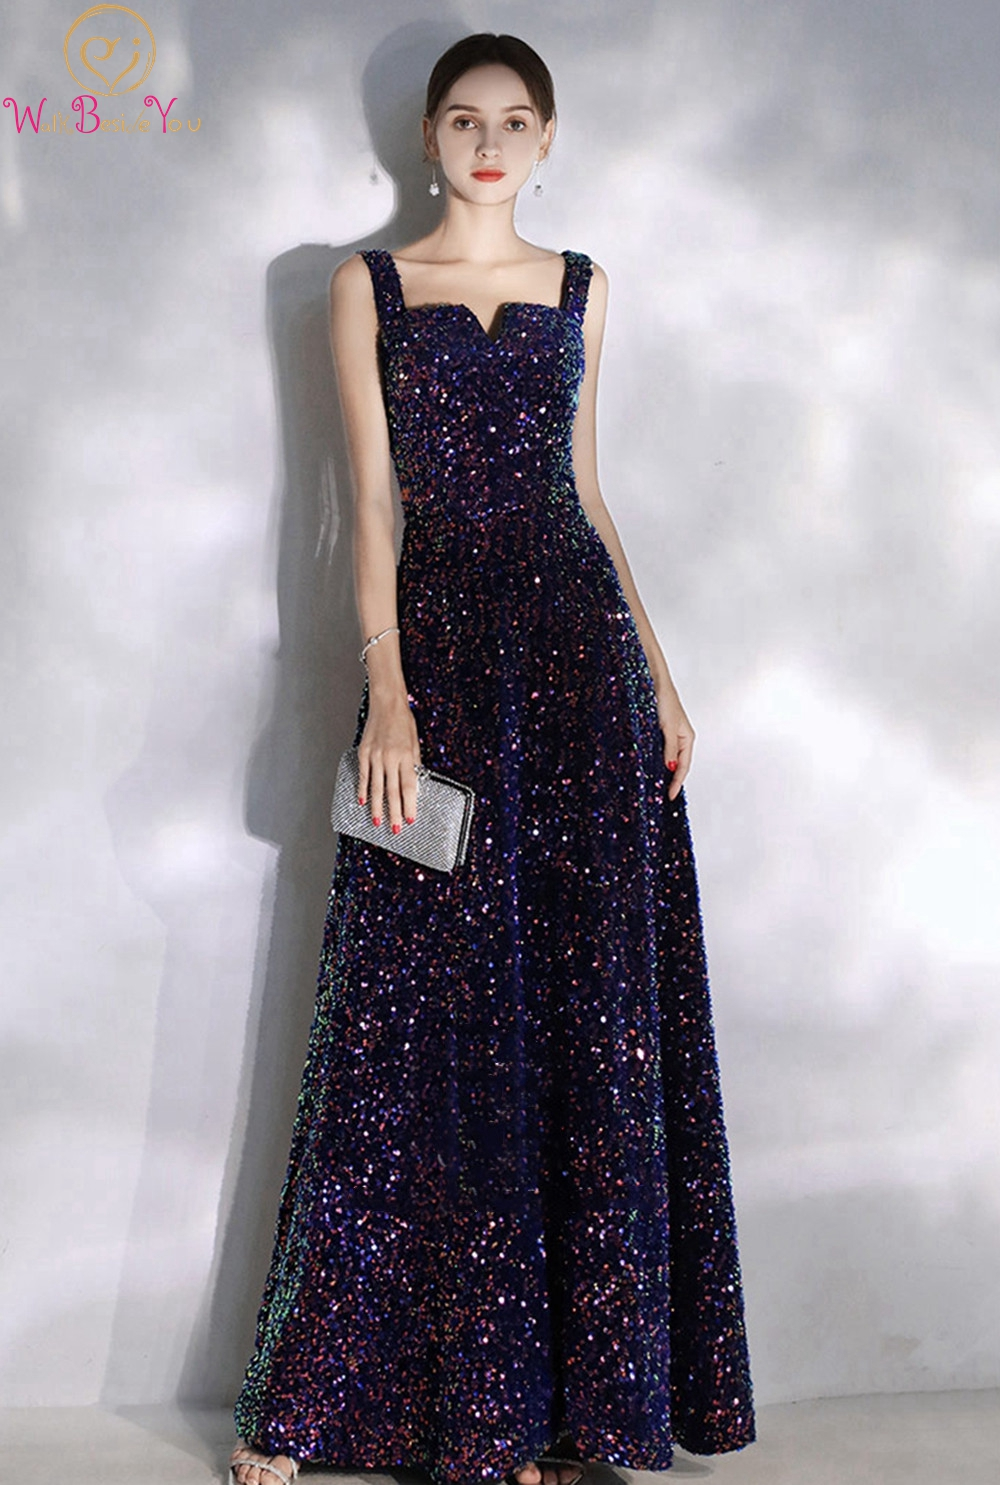 New Style Sequined Prom Dresses 2019 Elegant Women Navy Blue Sleeveless Bling Formal Party Long Evening Gowns Vestidos De Gala